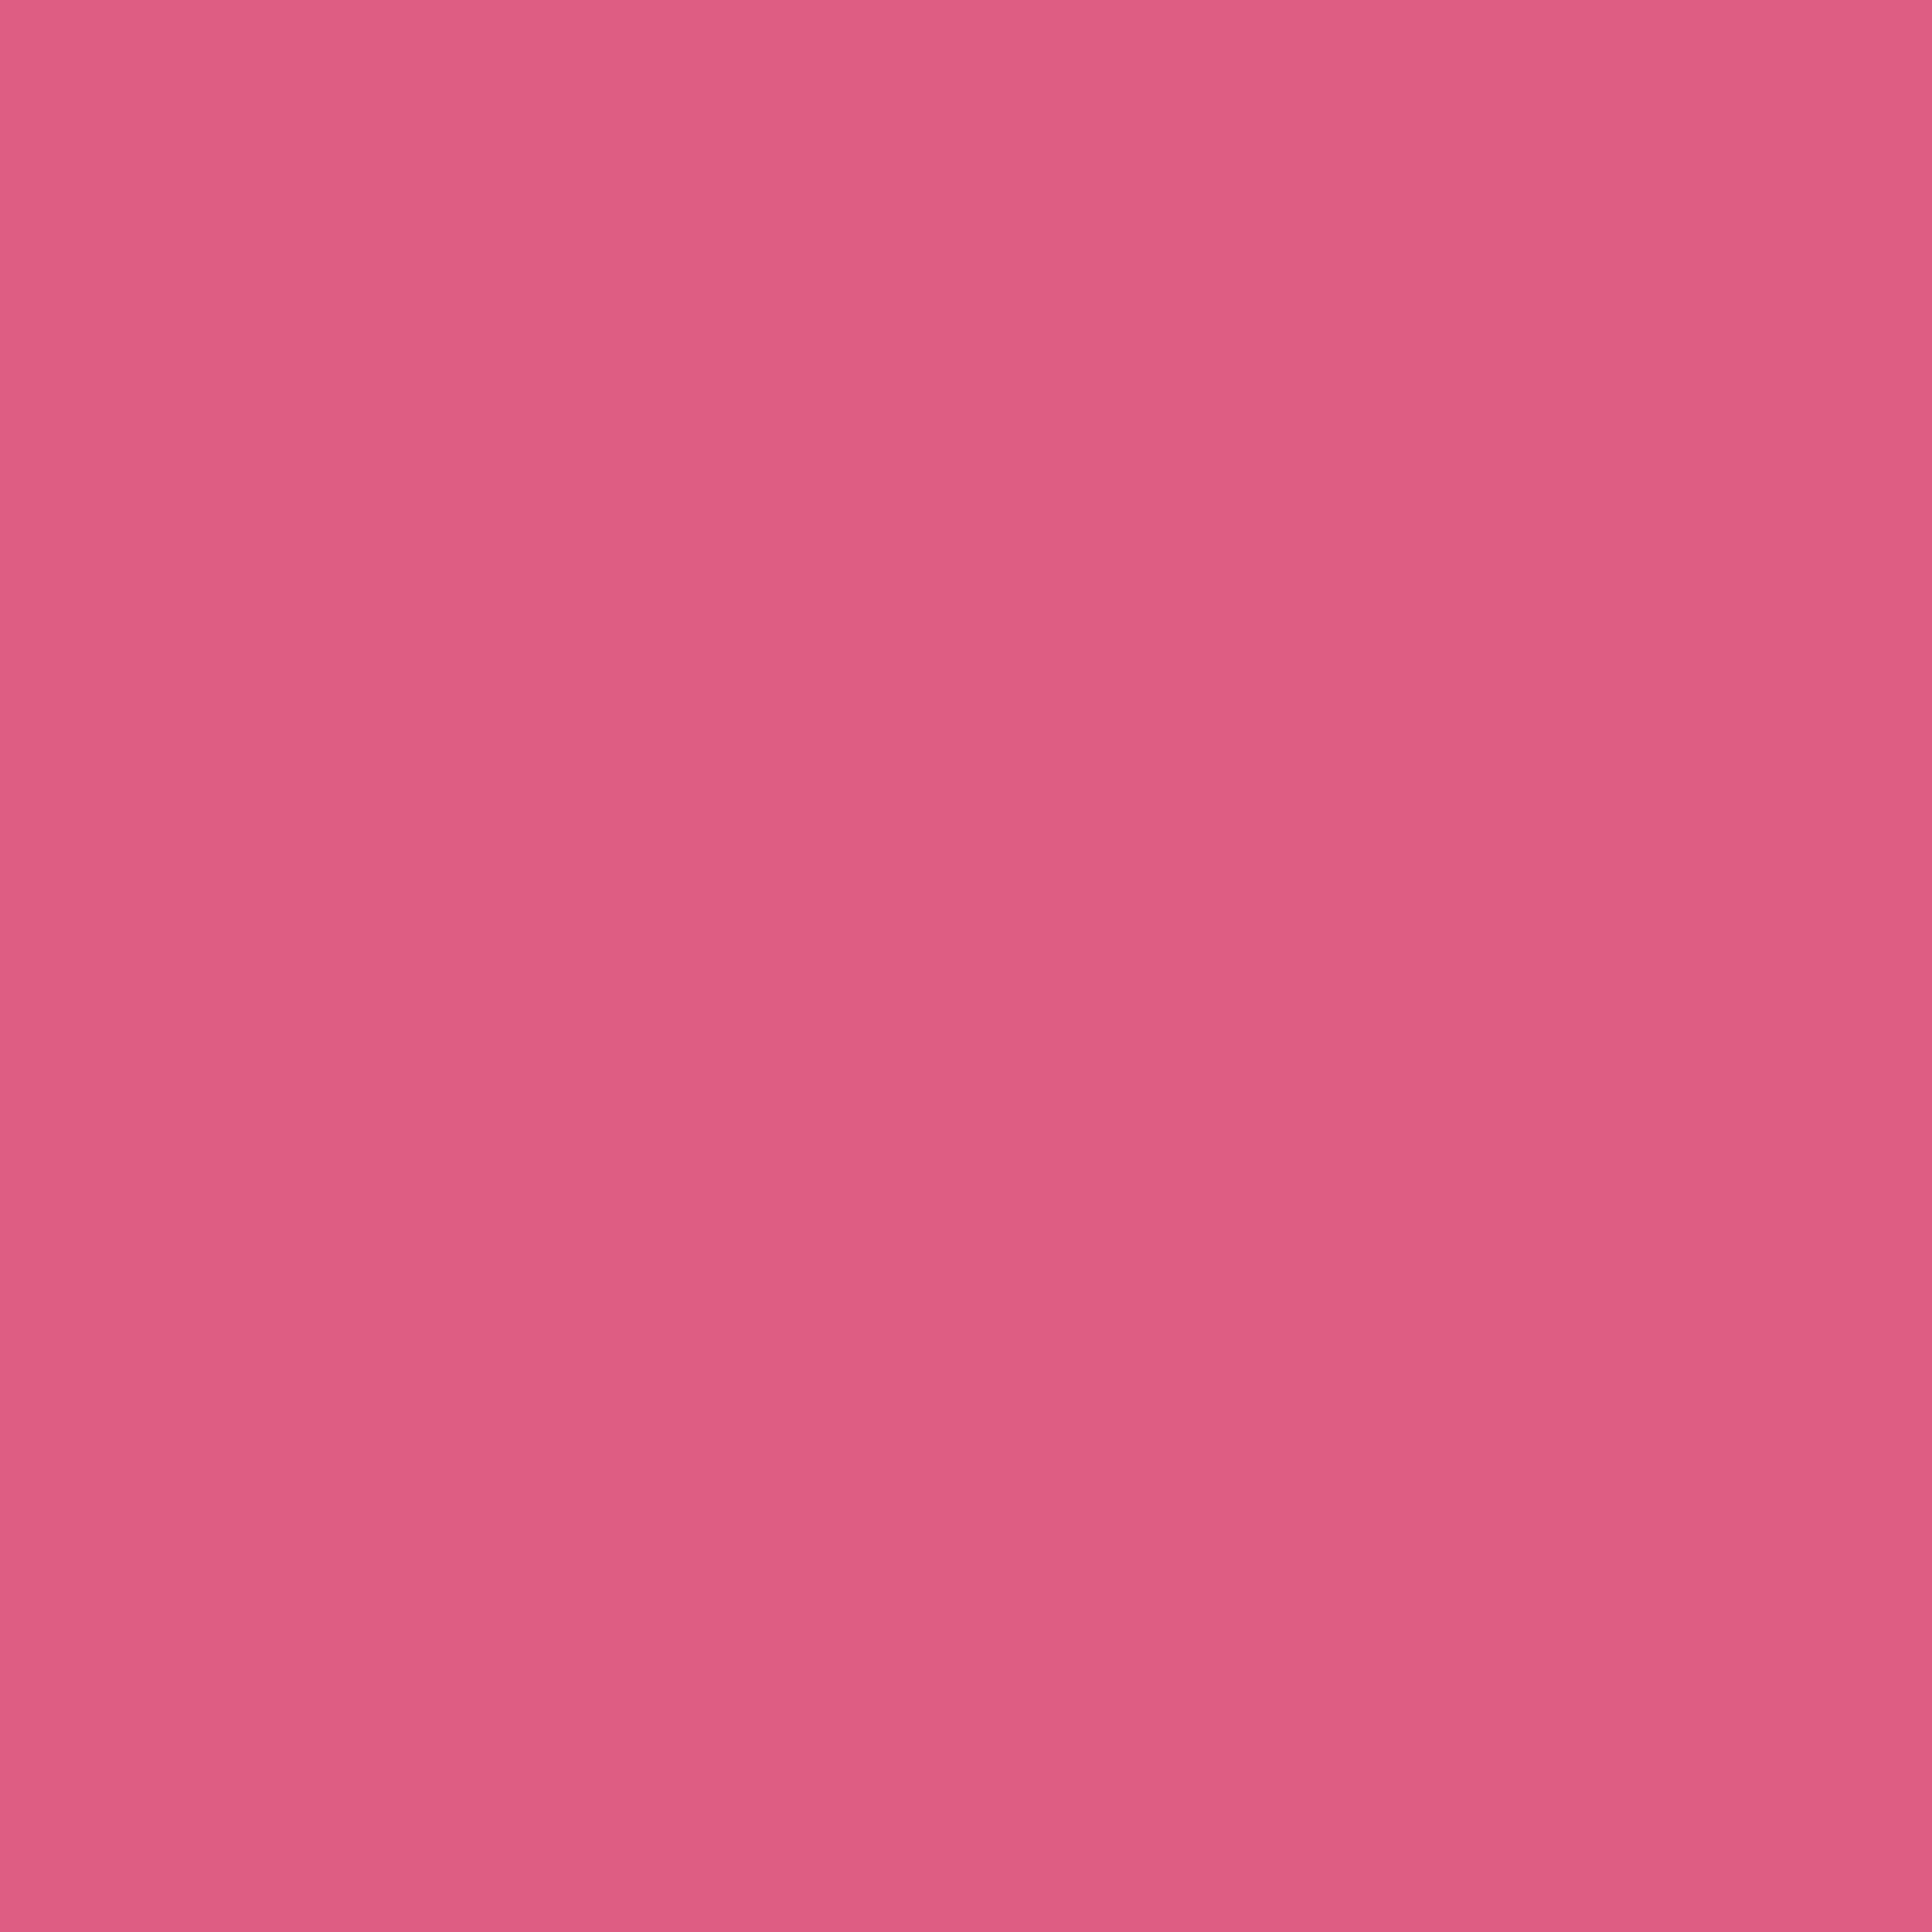 2732x2732 Blush Solid Color Background